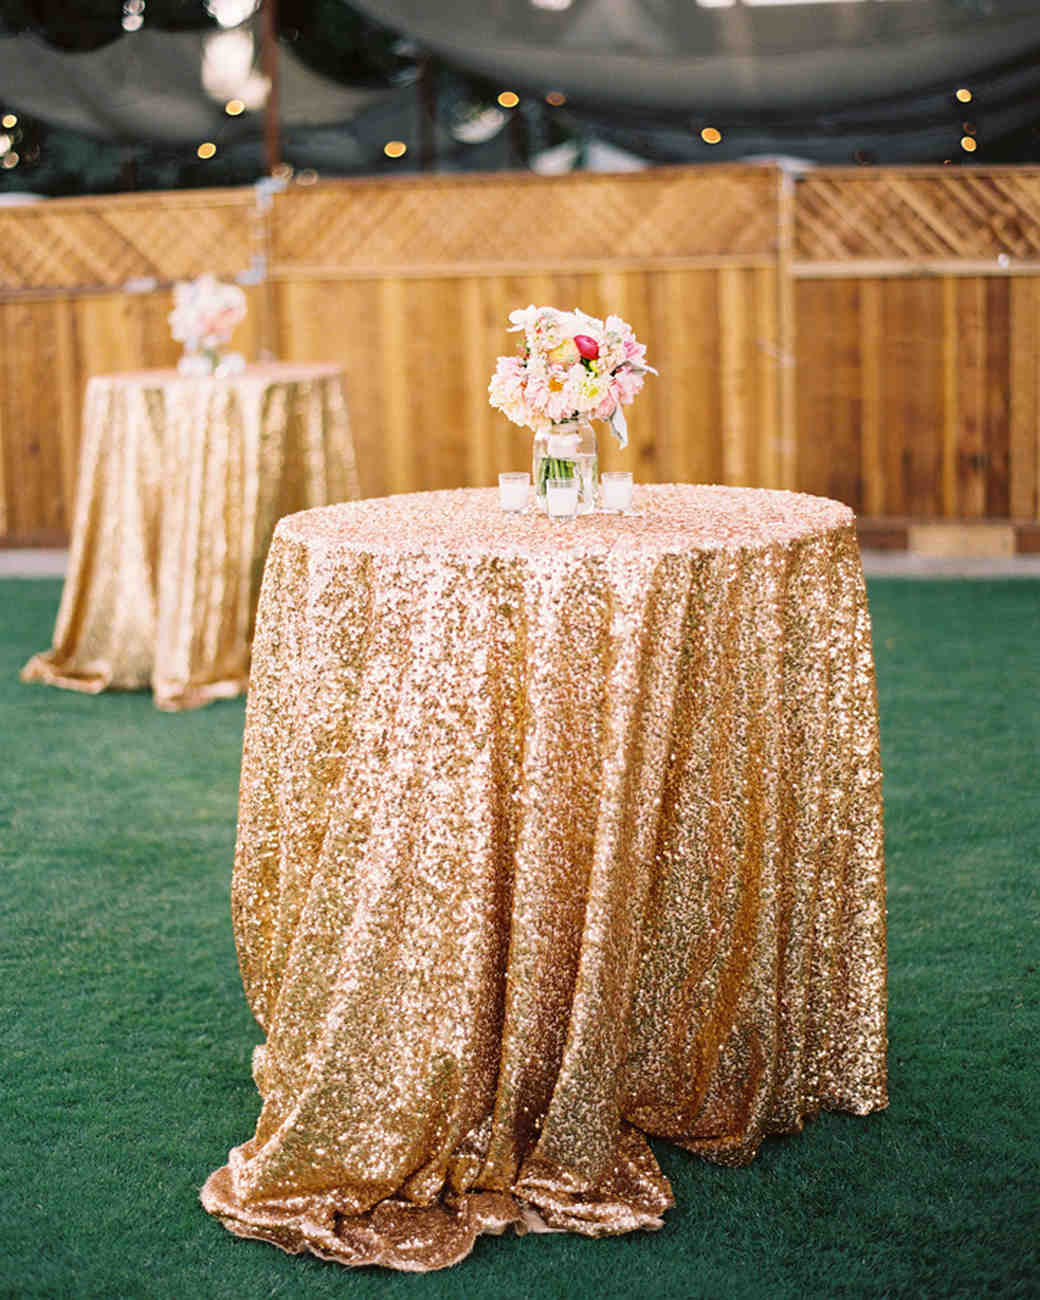 4-jacin-fitzgerald-gold-sequin-tablecloth-0116.jpg